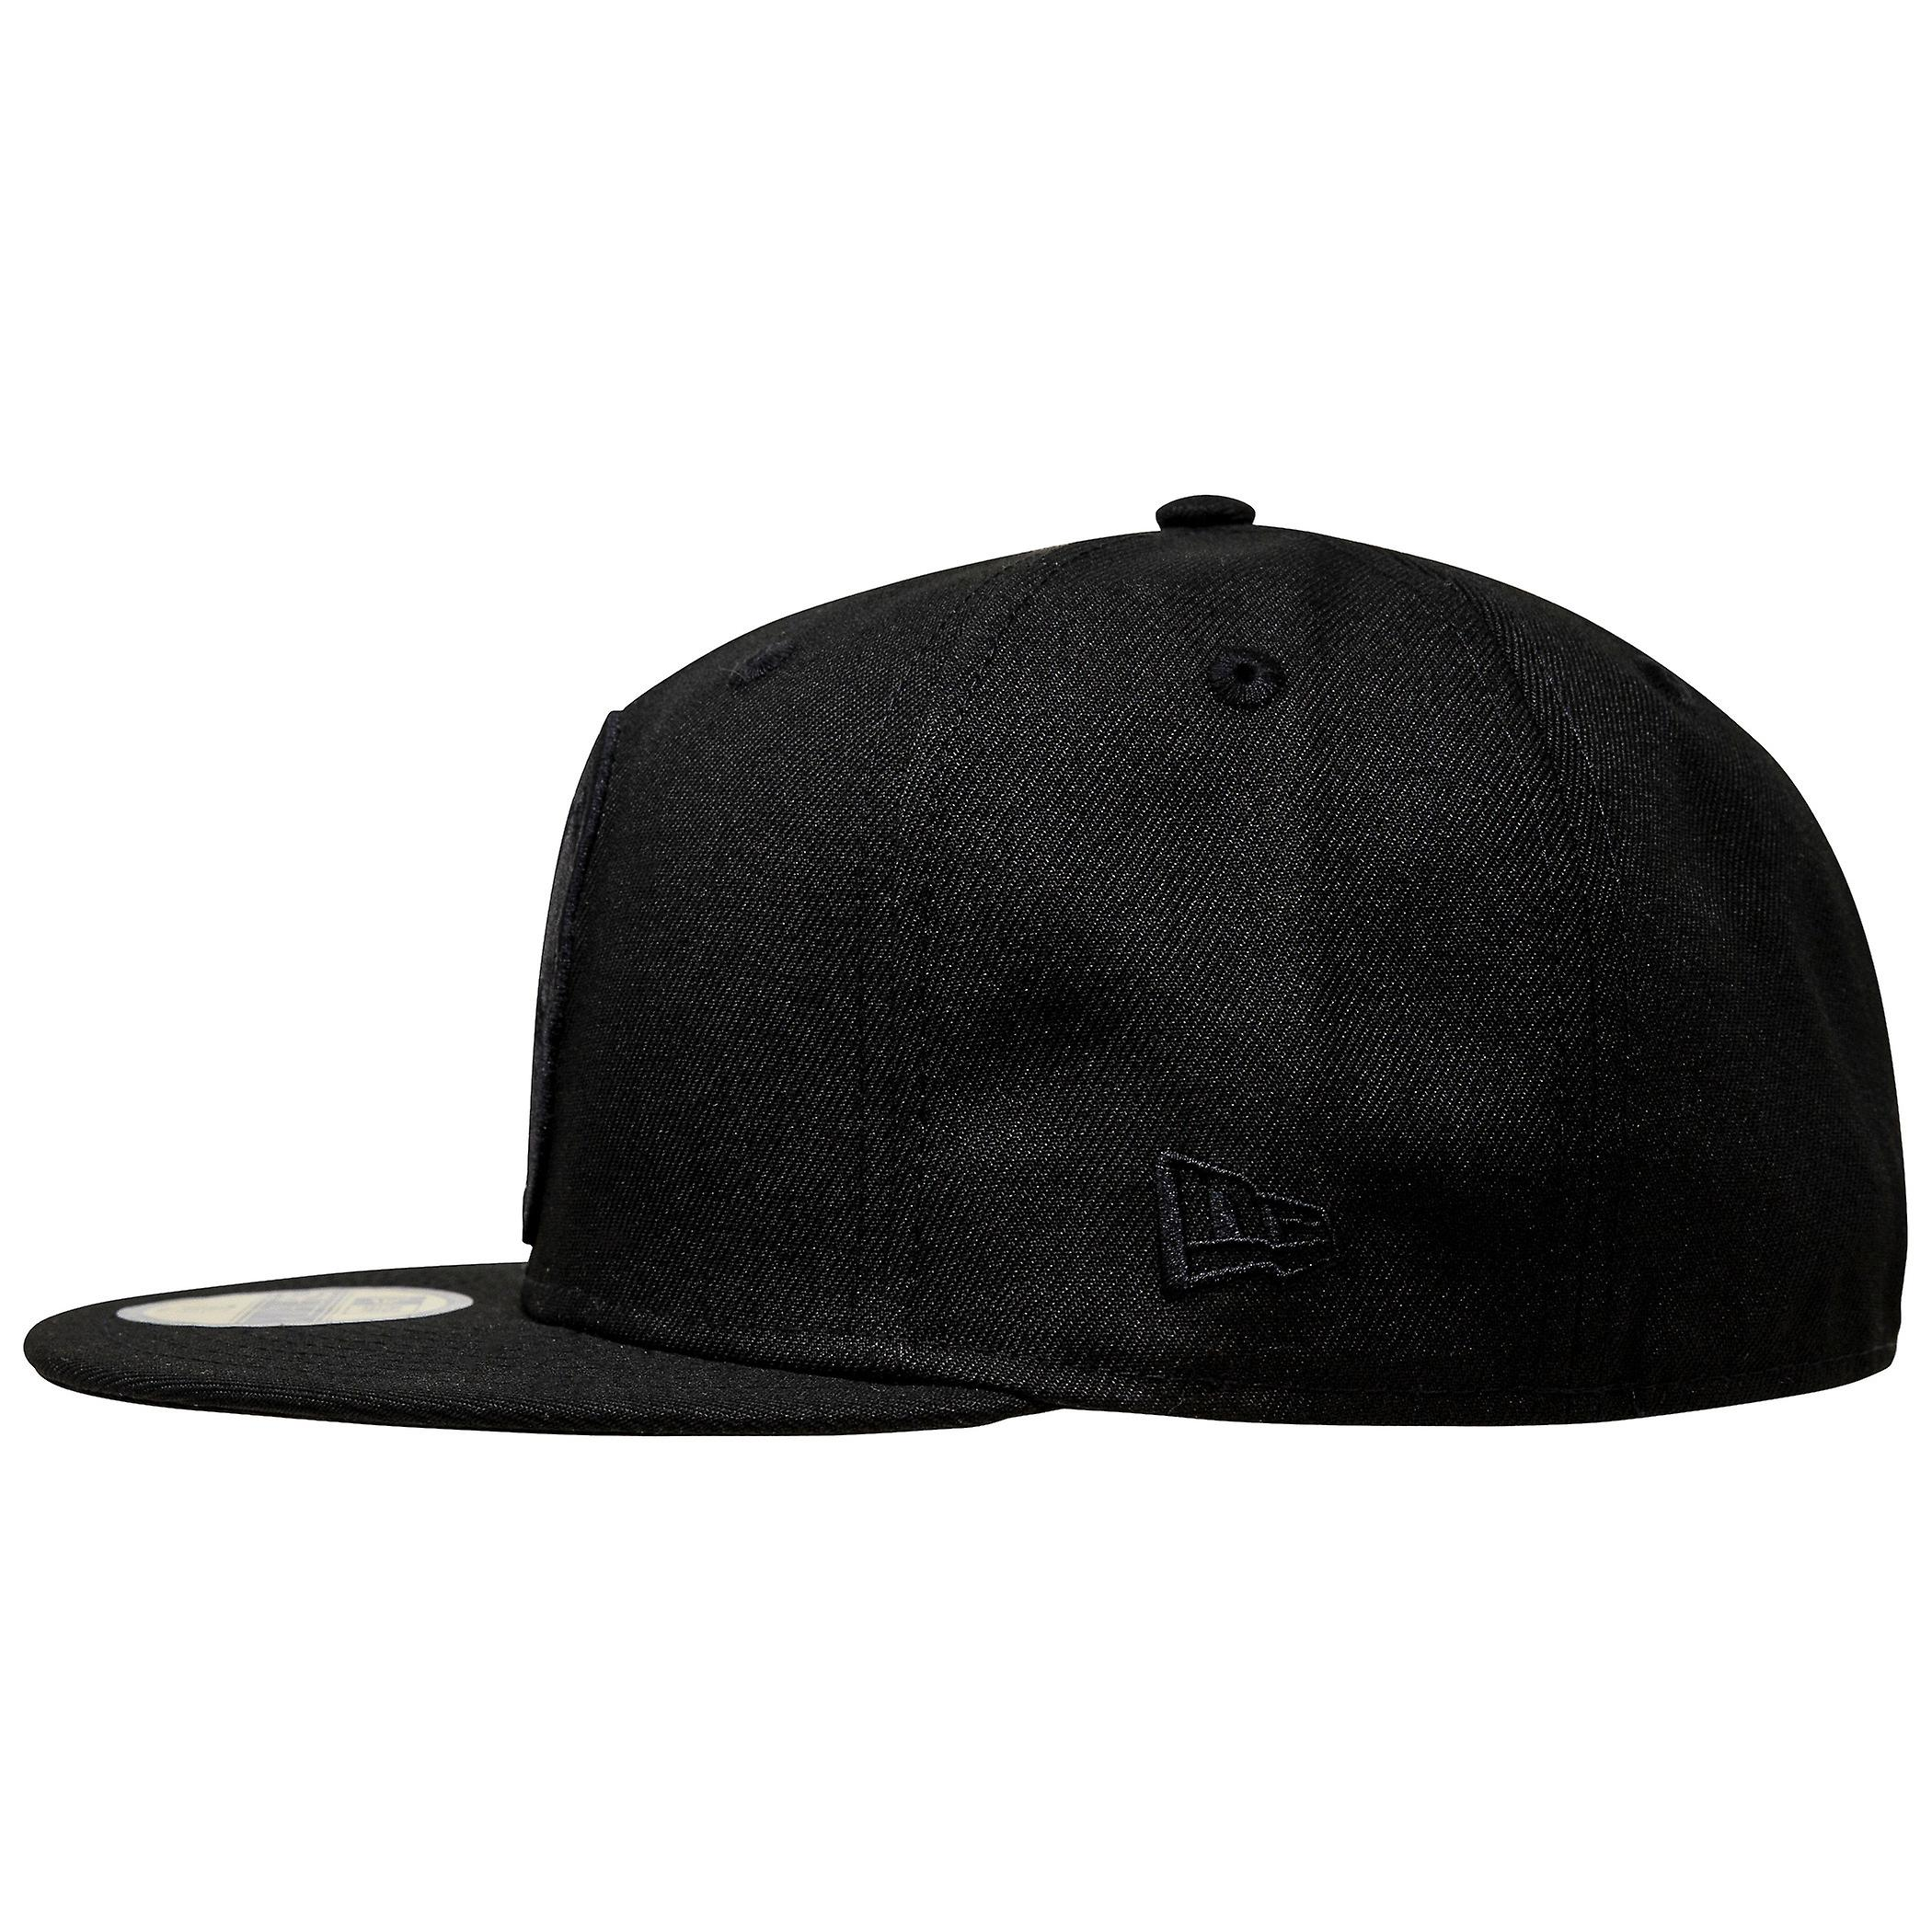 Long Live Iron Man Memorial MCU New Era 59Fifty Fitted Hat Black